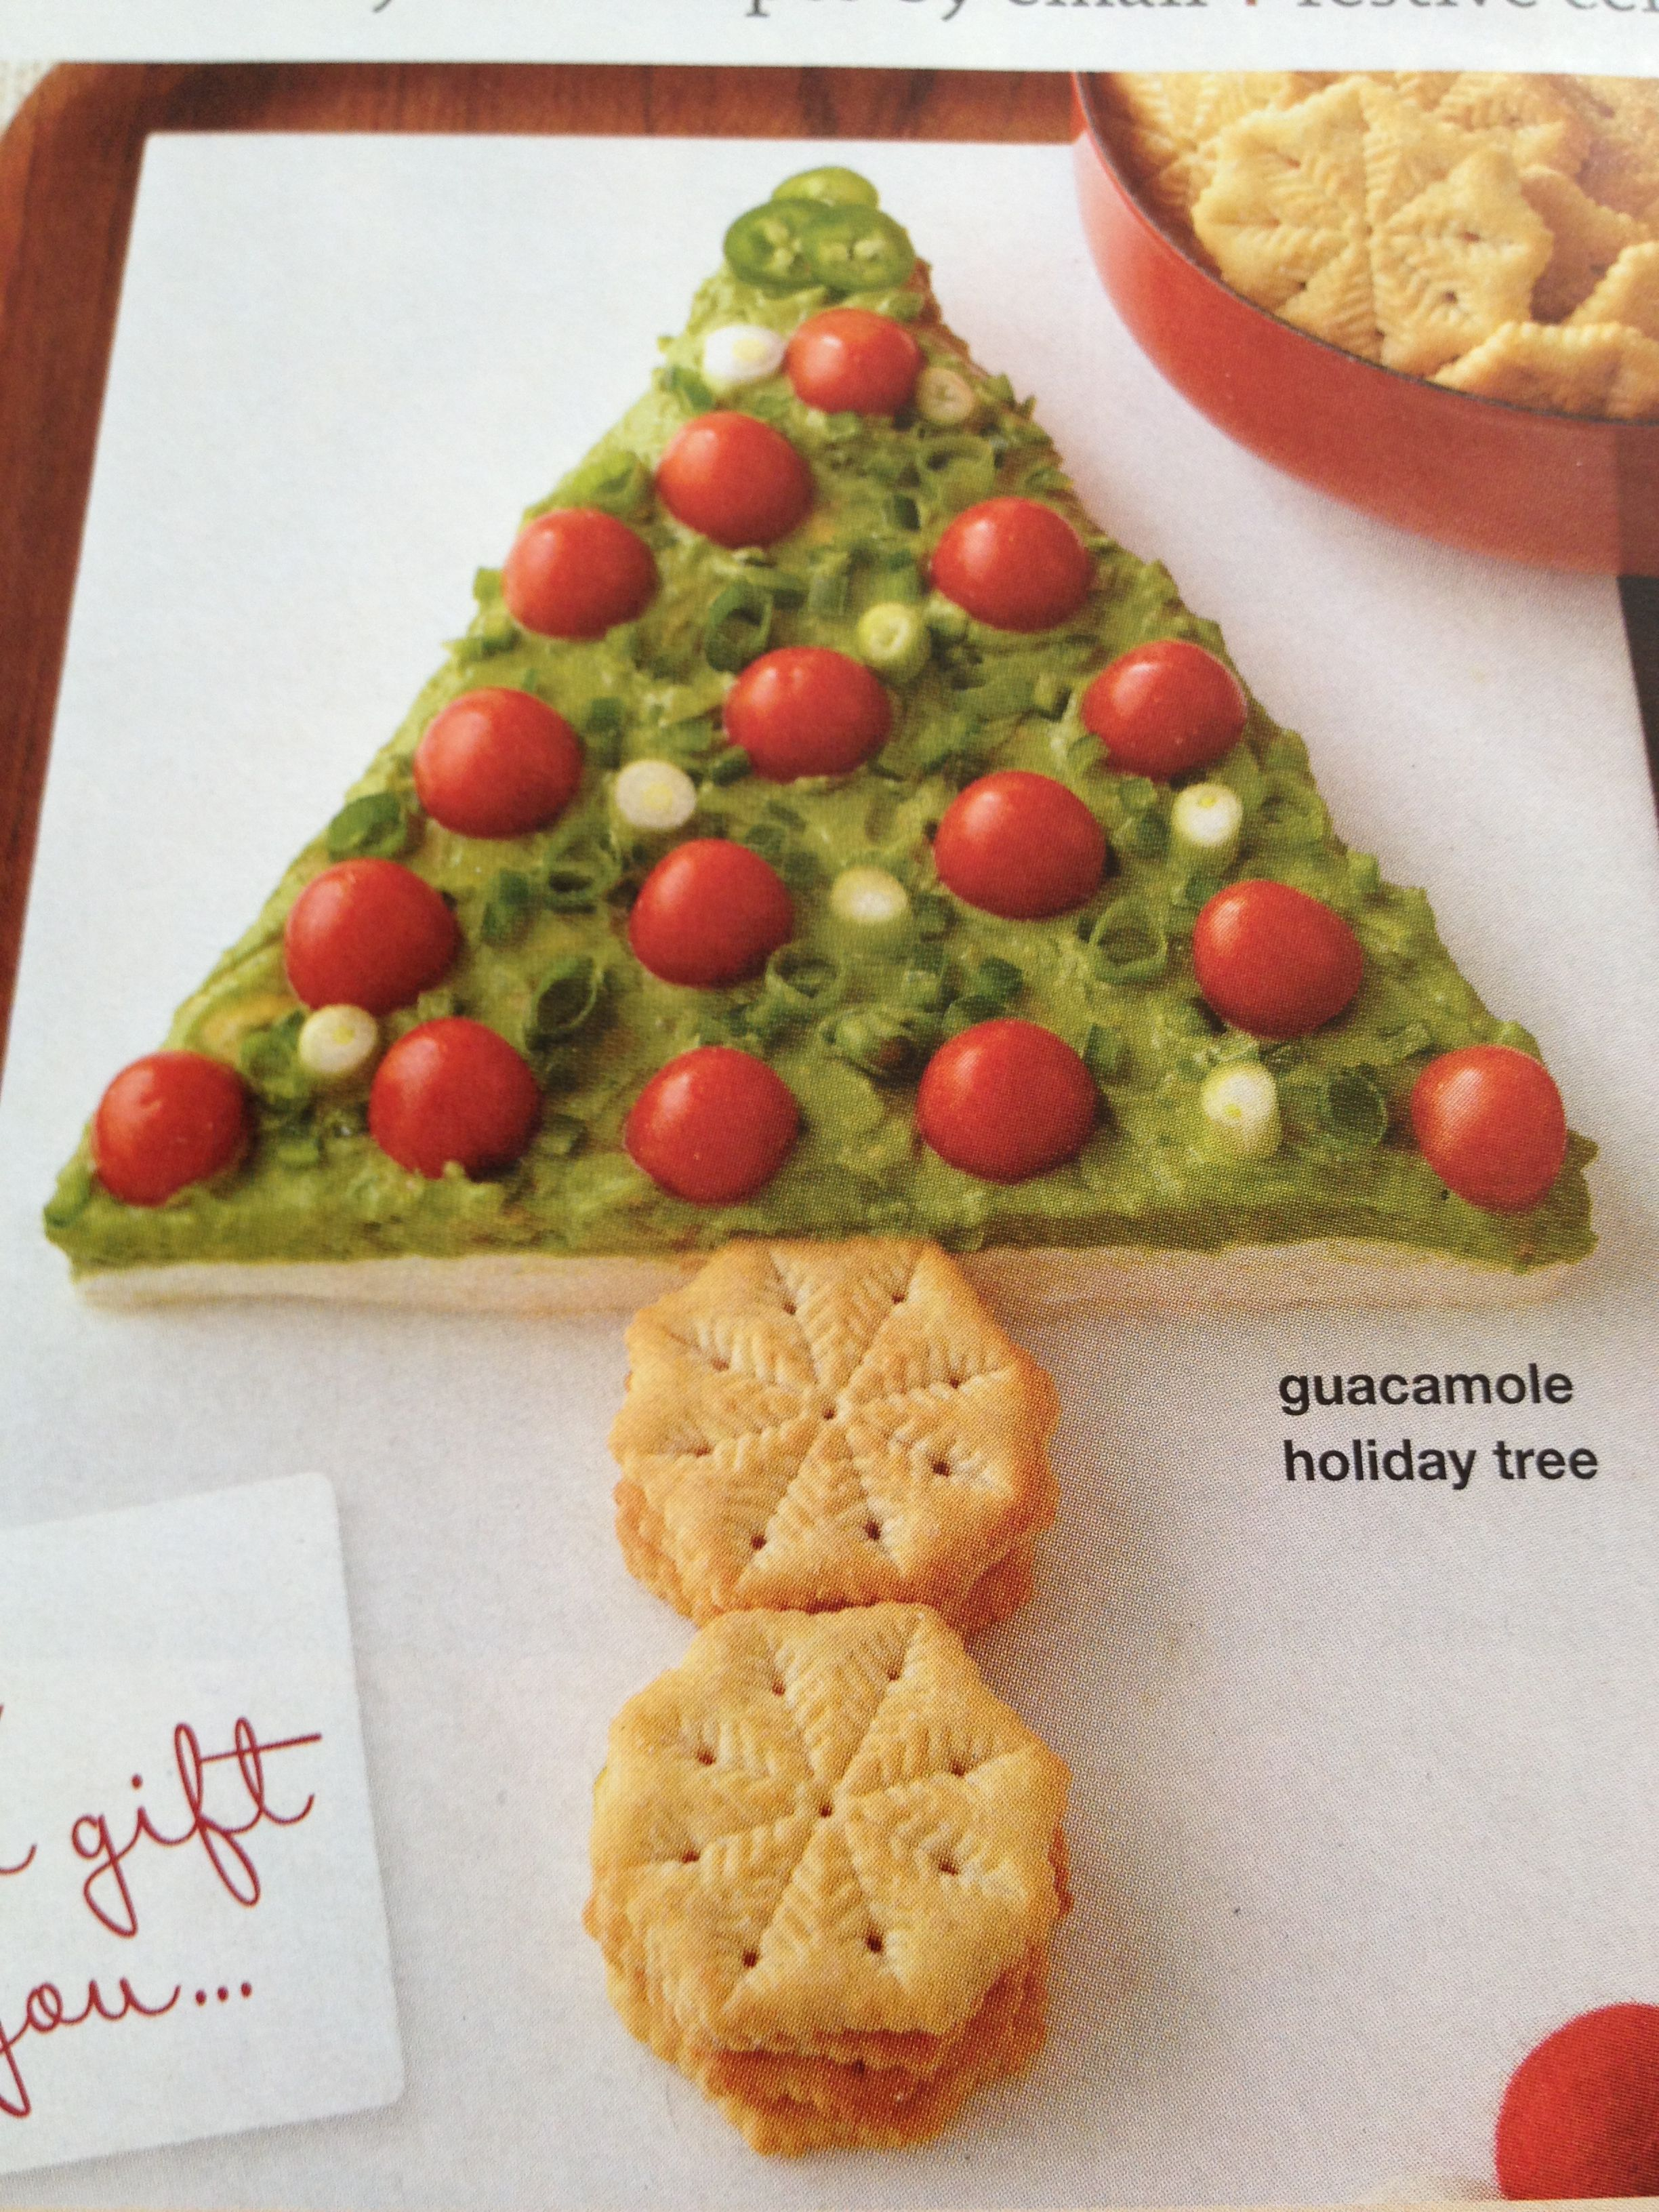 Guacamole holiday tree | FOOD_party | Pinterest